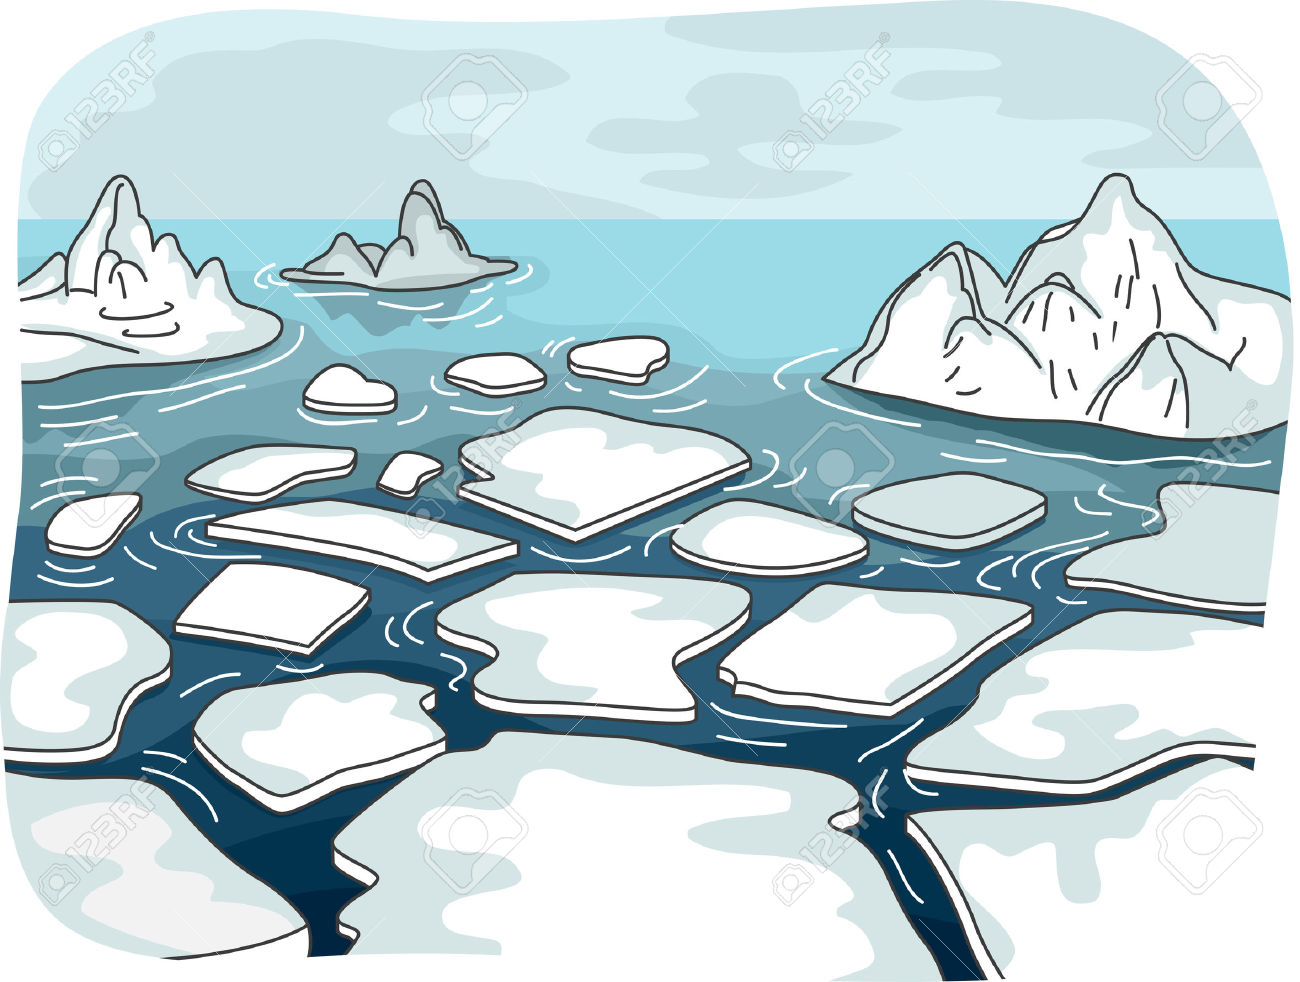 Illustration Featuring Melted Glaciers Drifting In The Middle.